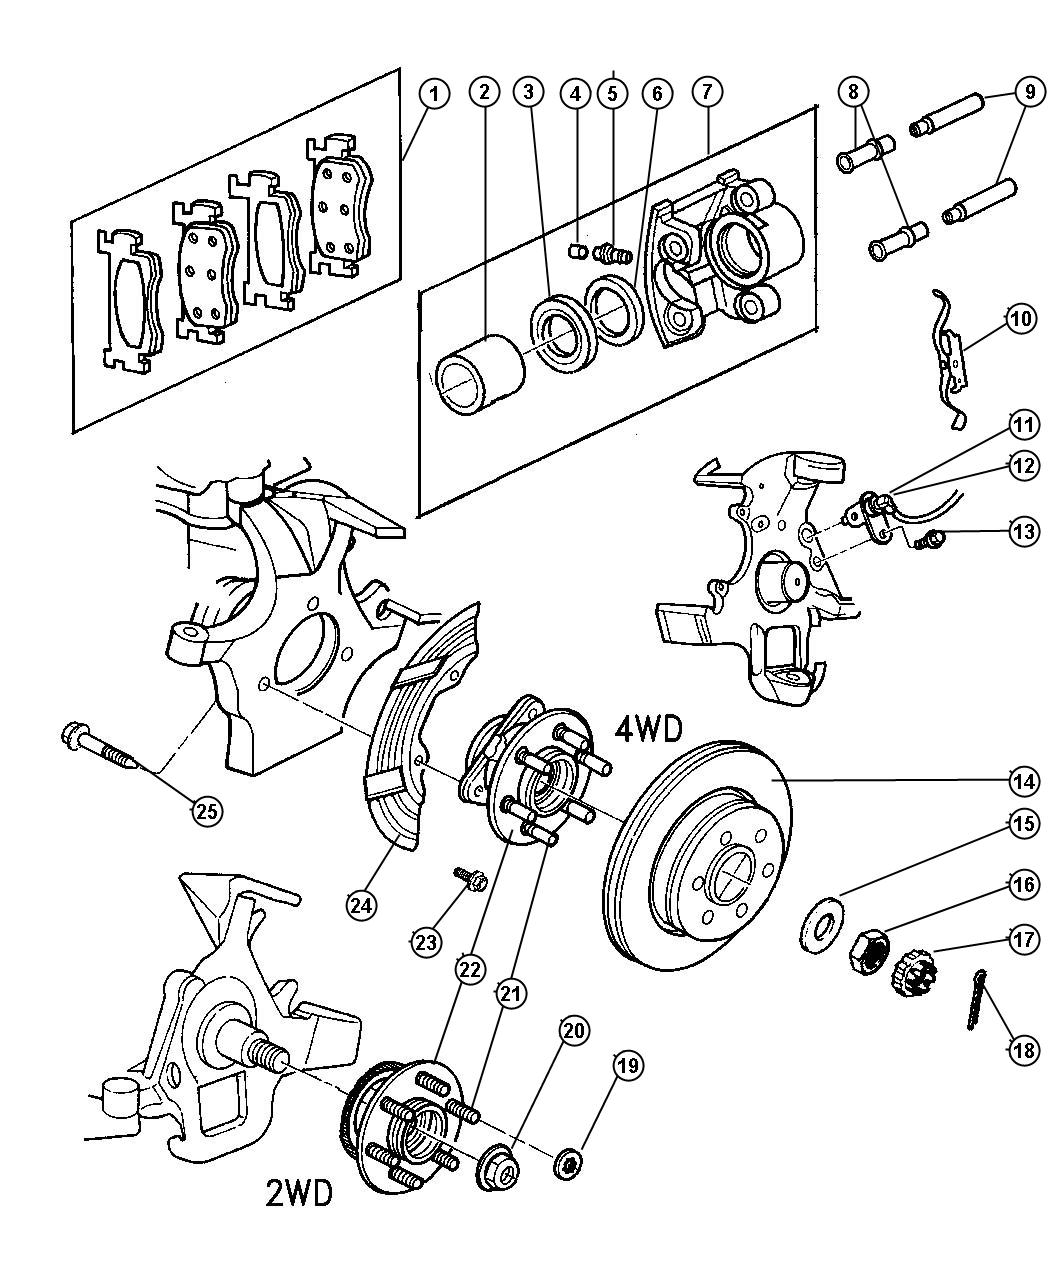 Dodge Dakota Factory Parts Pictures to Pin on Pinterest